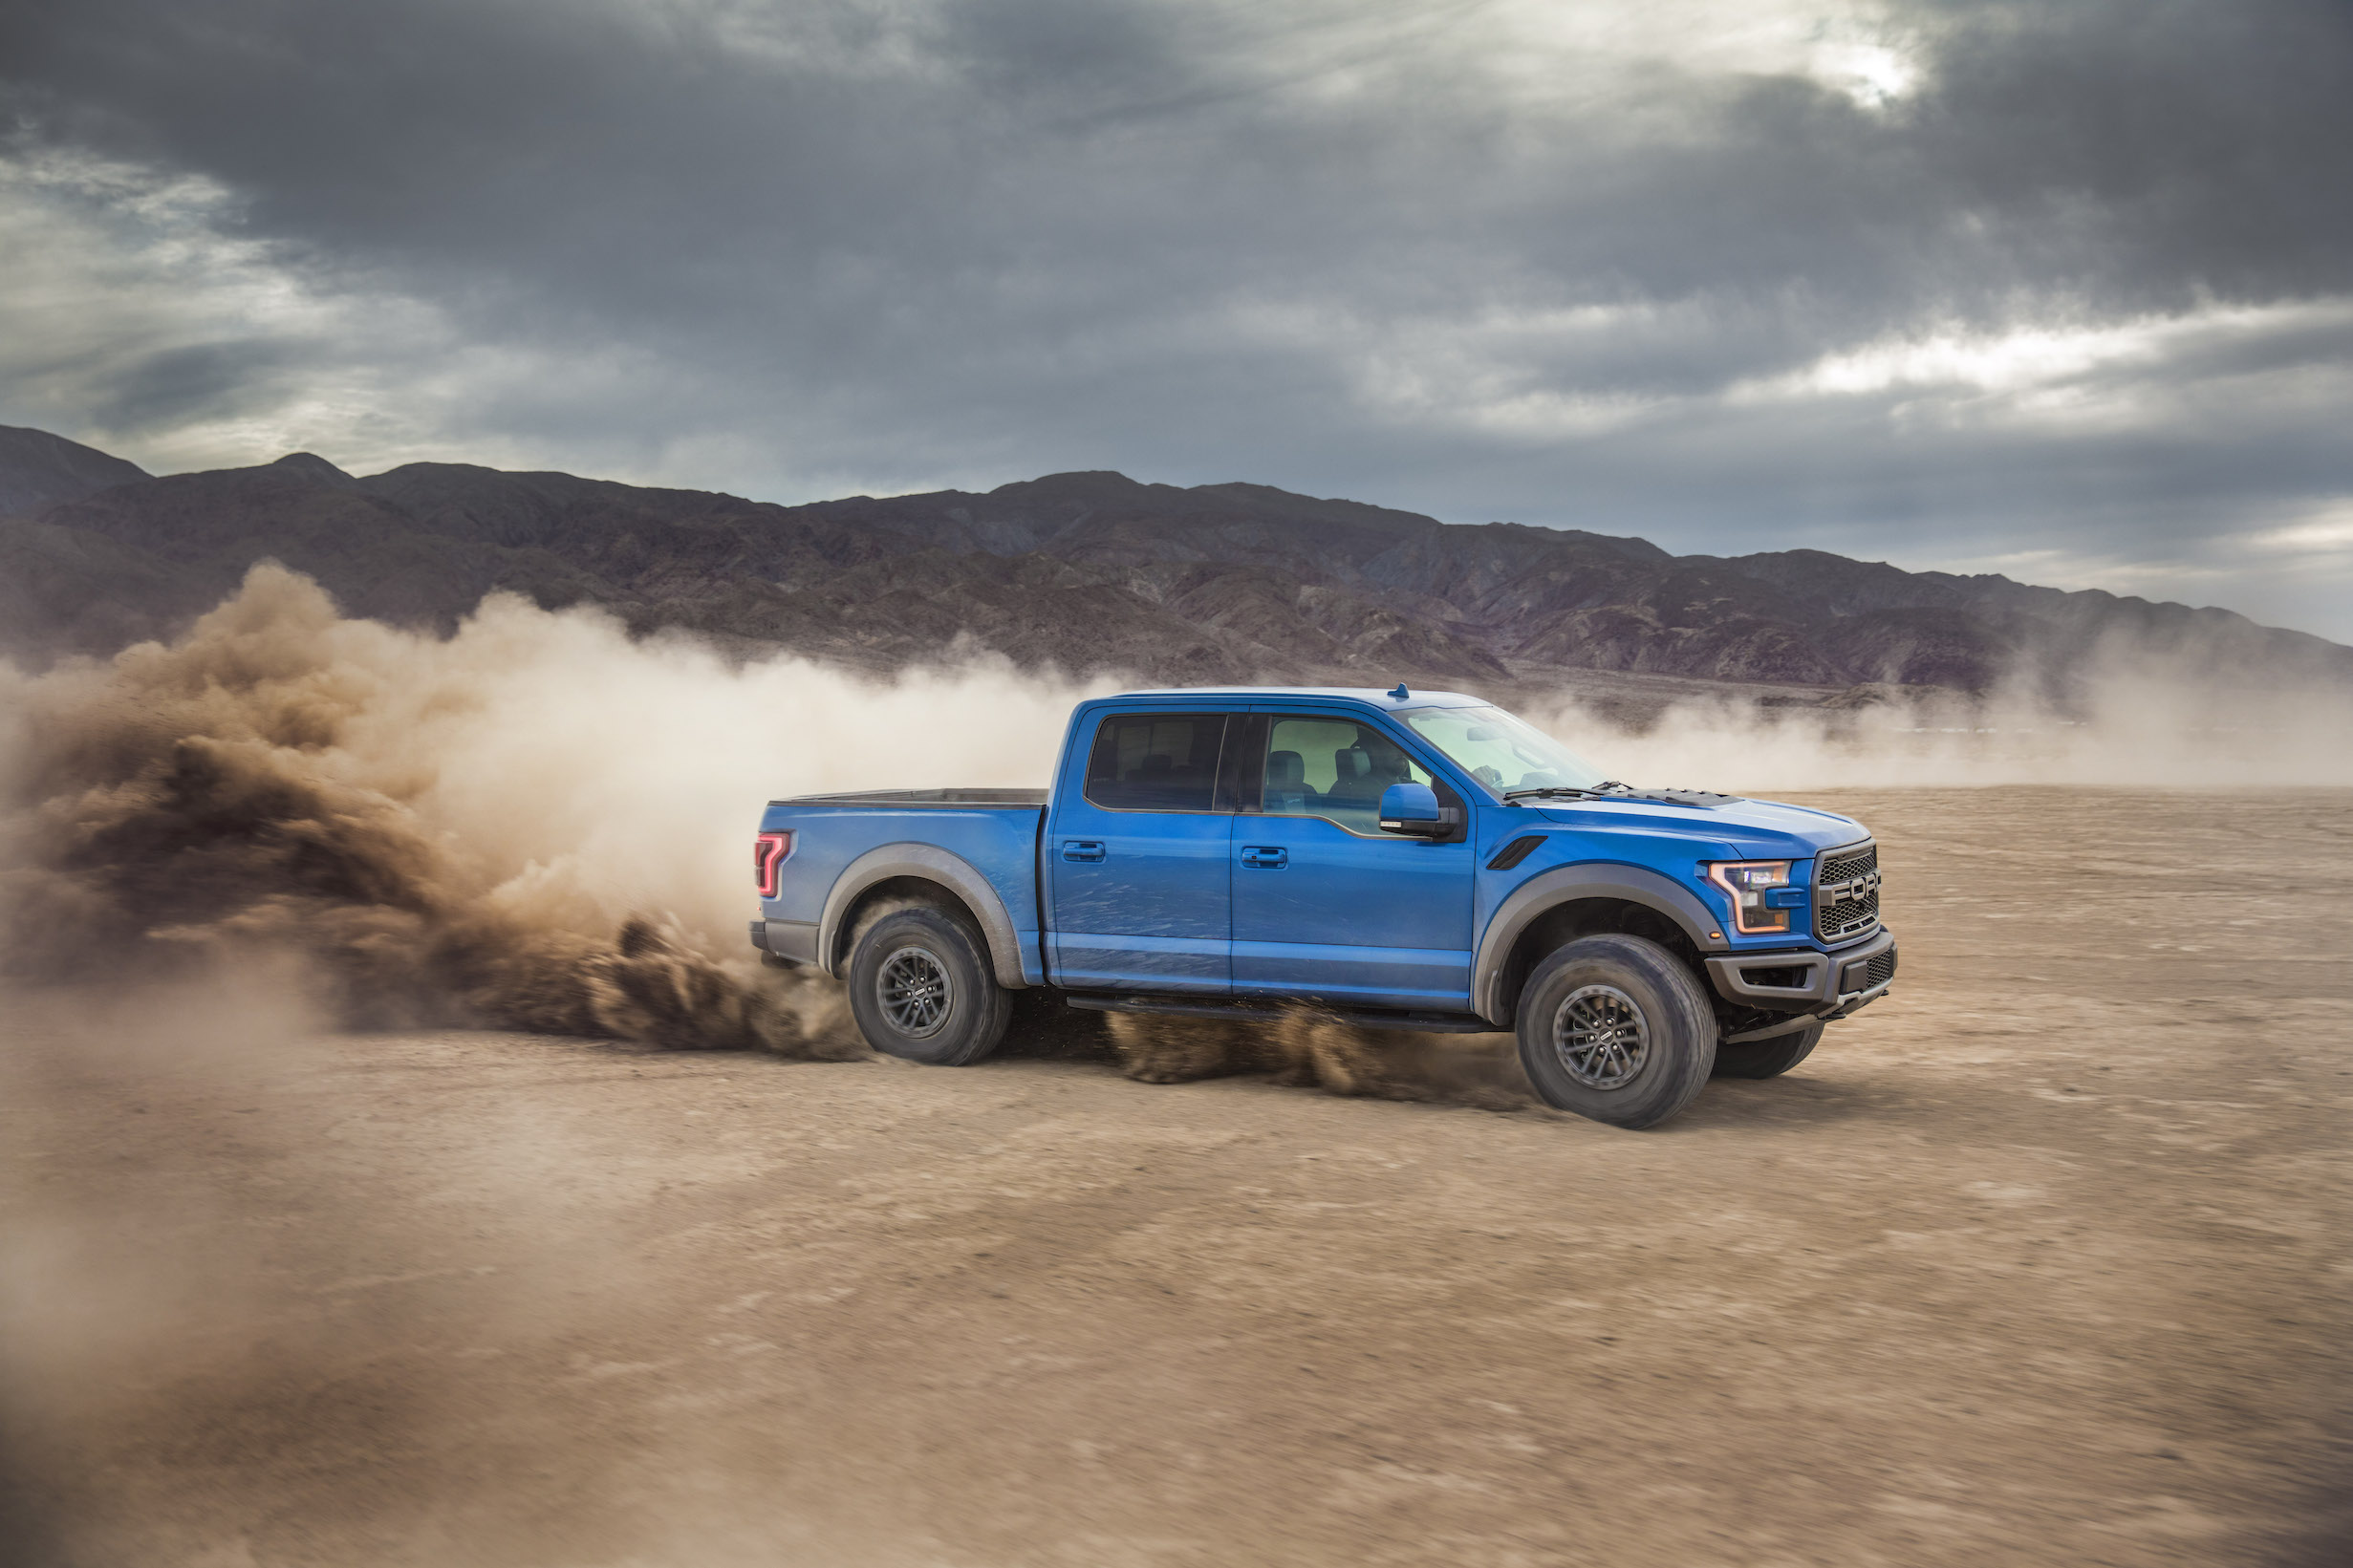 2019 Ford F-150 Raptor Dry Lake Dust